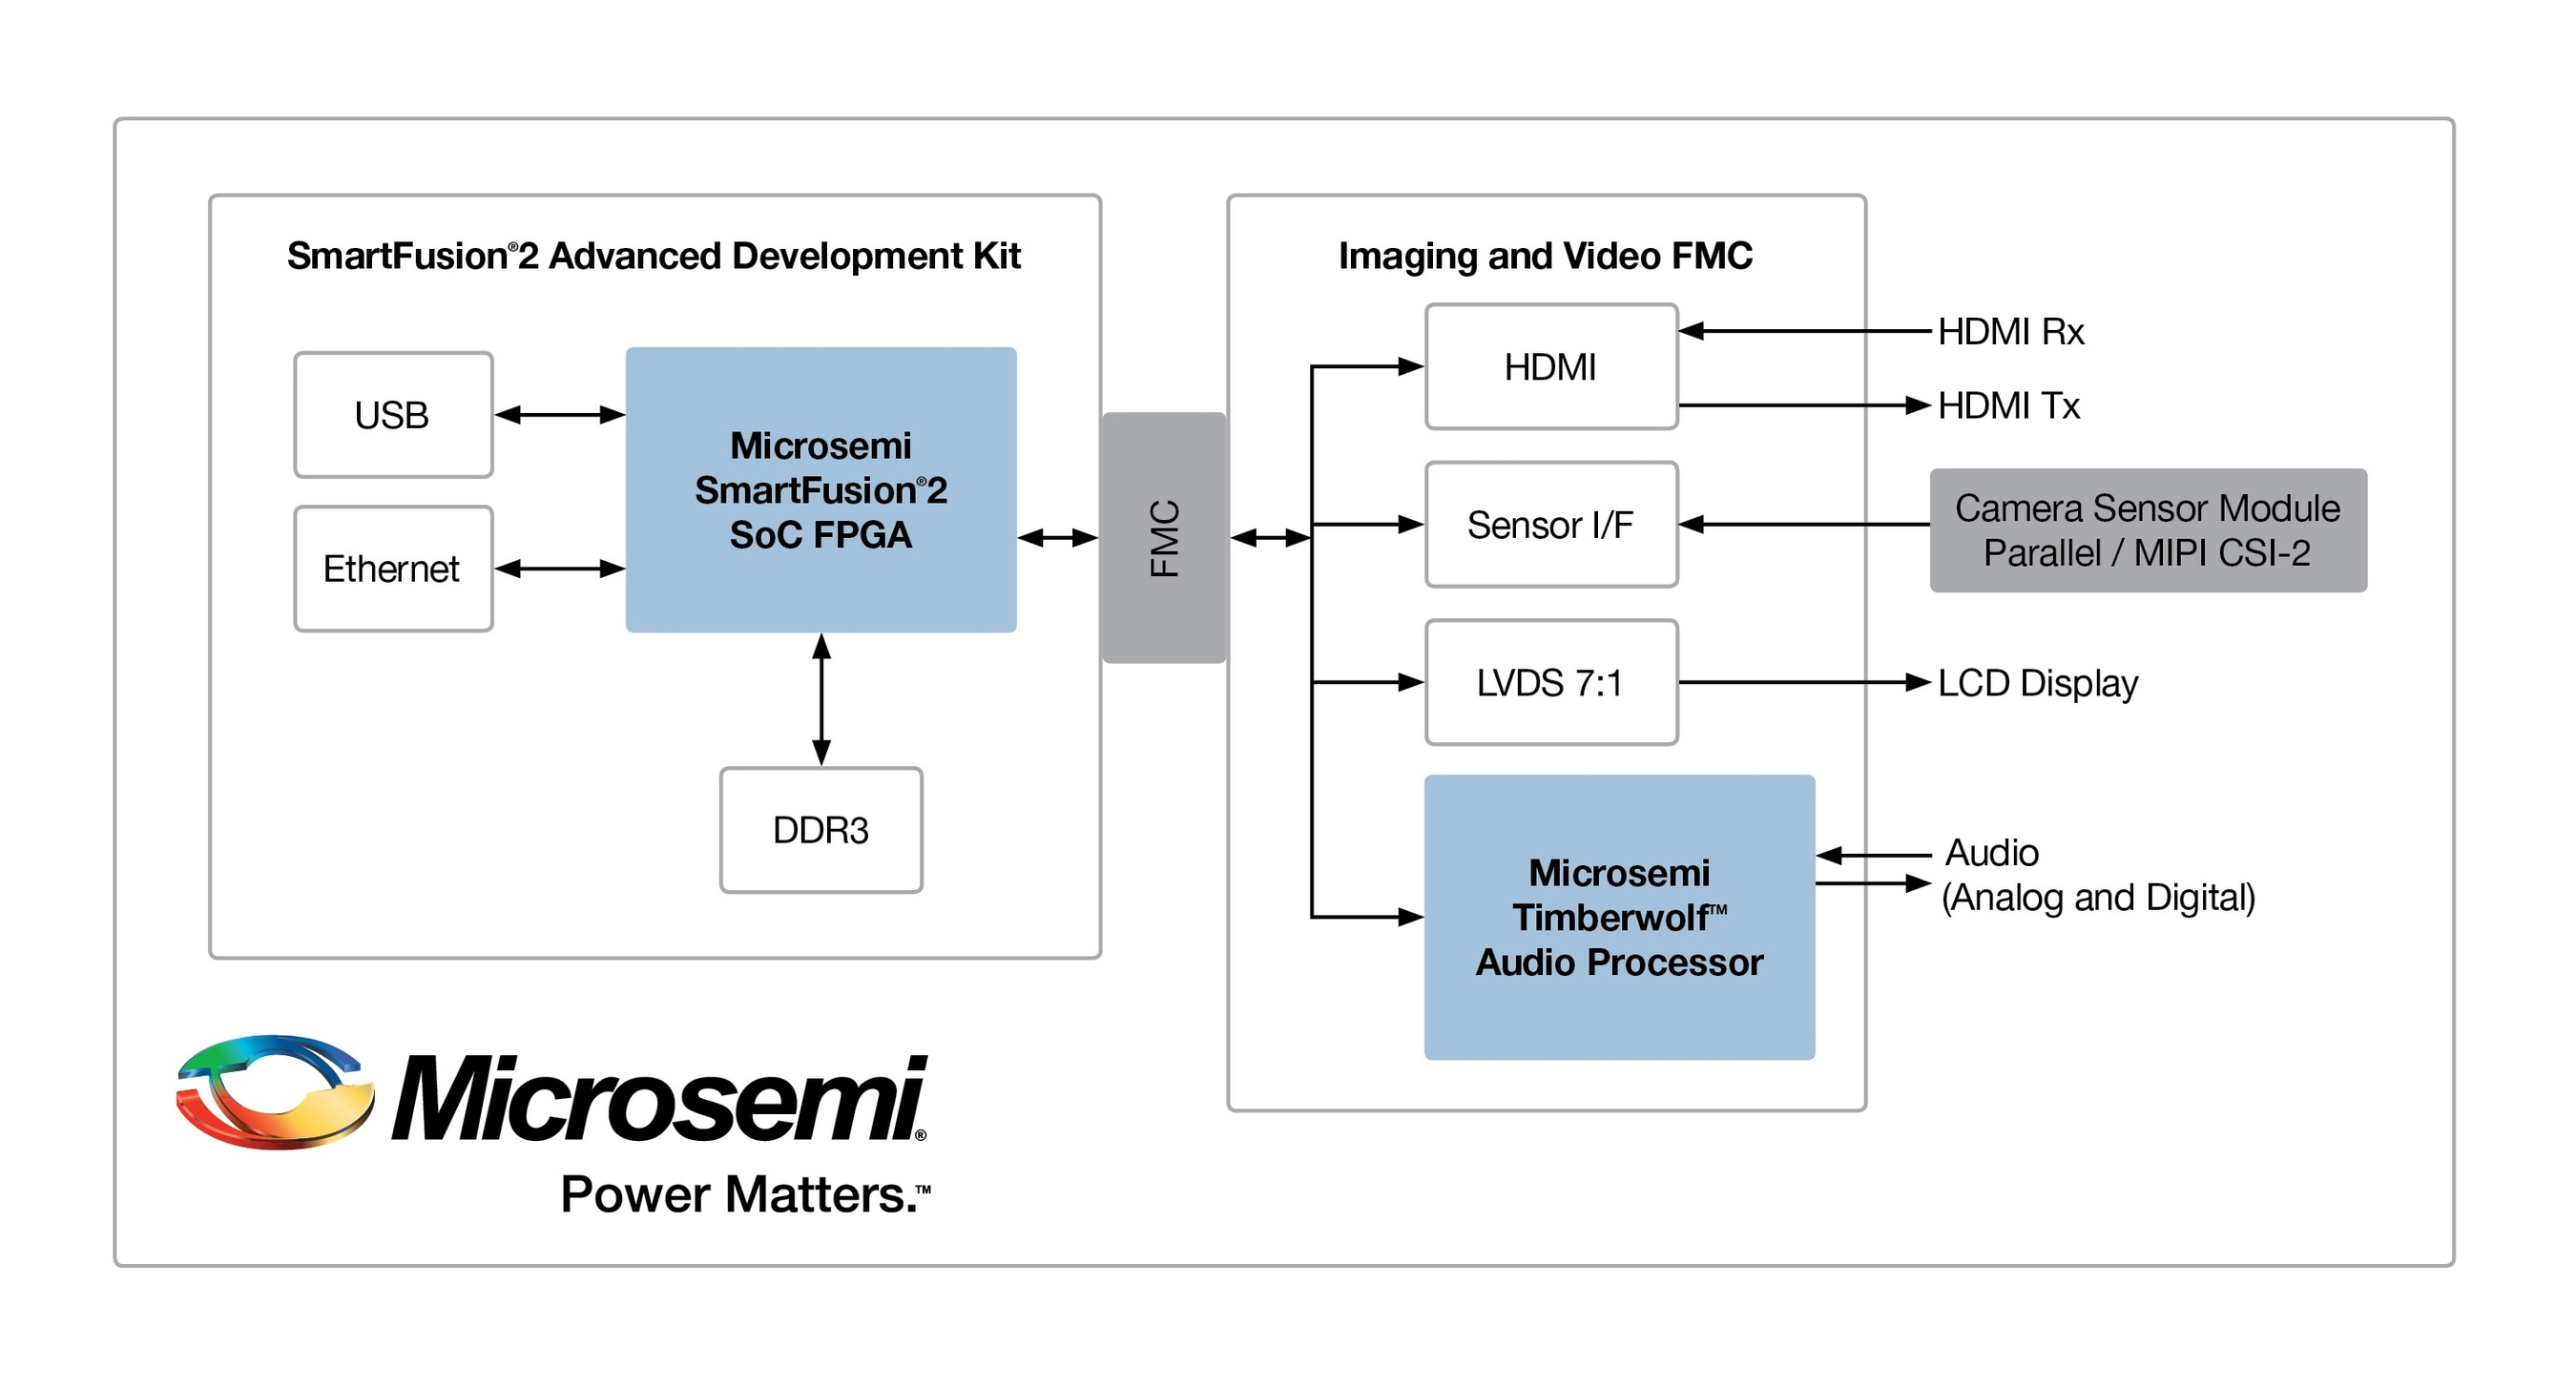 Microsemi Announces New Addition to its Imaging/Video Solution to